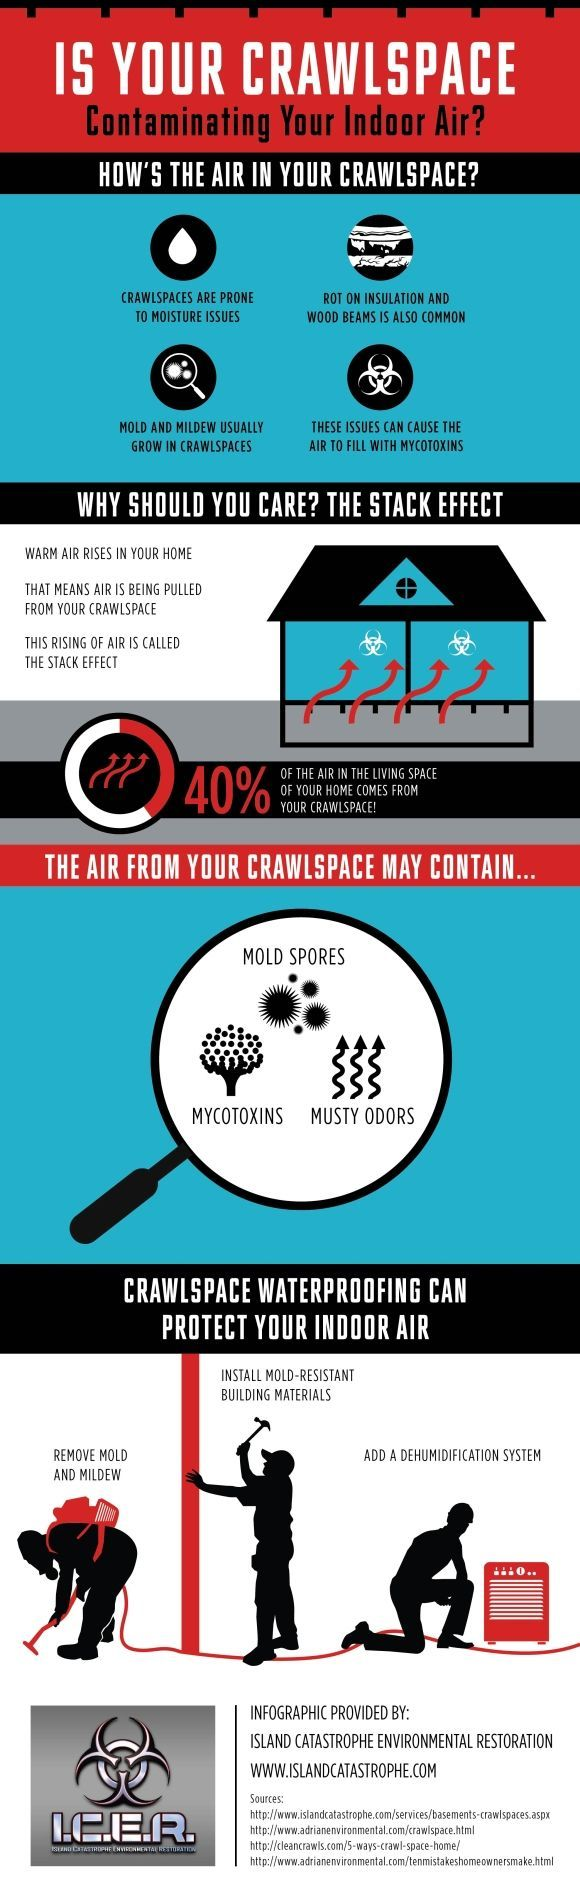 Crawlspace waterproofing can protect your indoor air  This service can  remove mold and mildew. 17 Best images about HVAC on Pinterest   Conditioning  Commercial